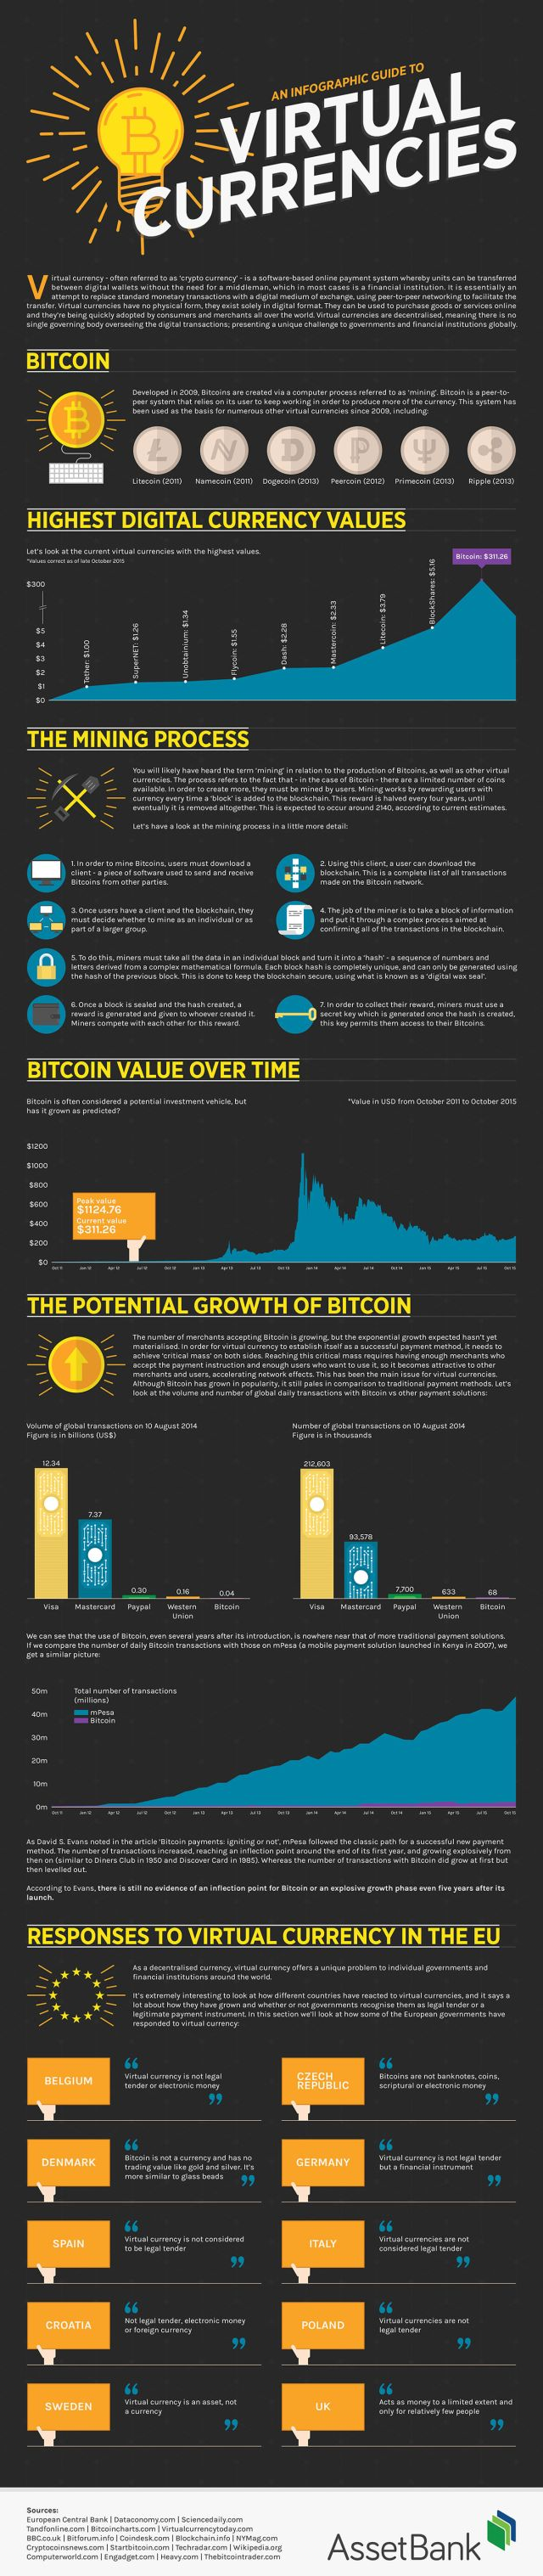 an-infographic-guide-to-virtual-currencies_5645c29ce987c